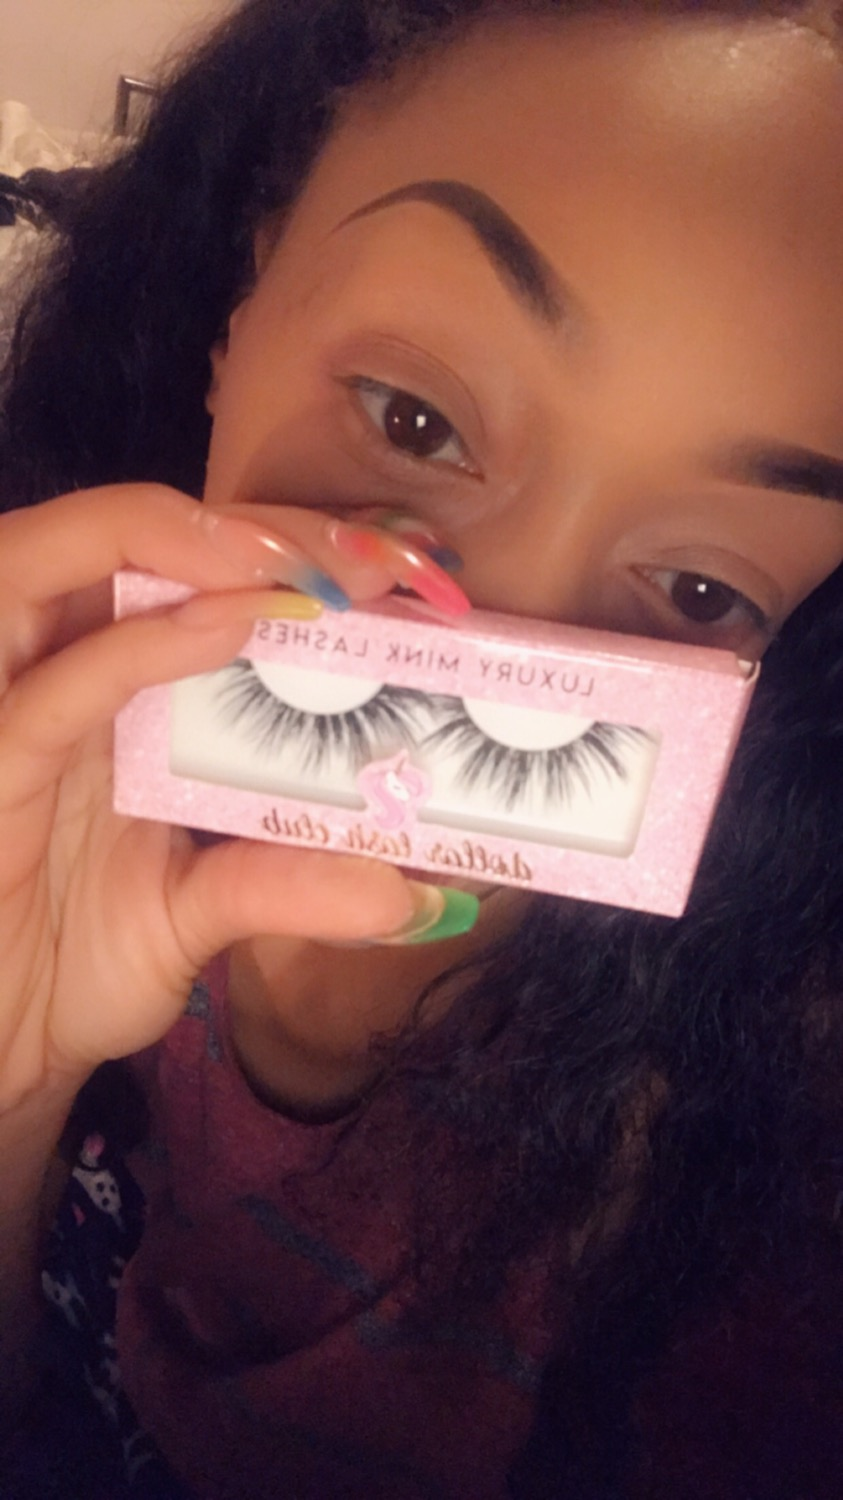 f62c0ac07f5 My first lashes were the Kiley Lashes. And I must say they are dangerously  beautiful! I absolutely love them. Full and flexibile, just how I like em.  ☺️